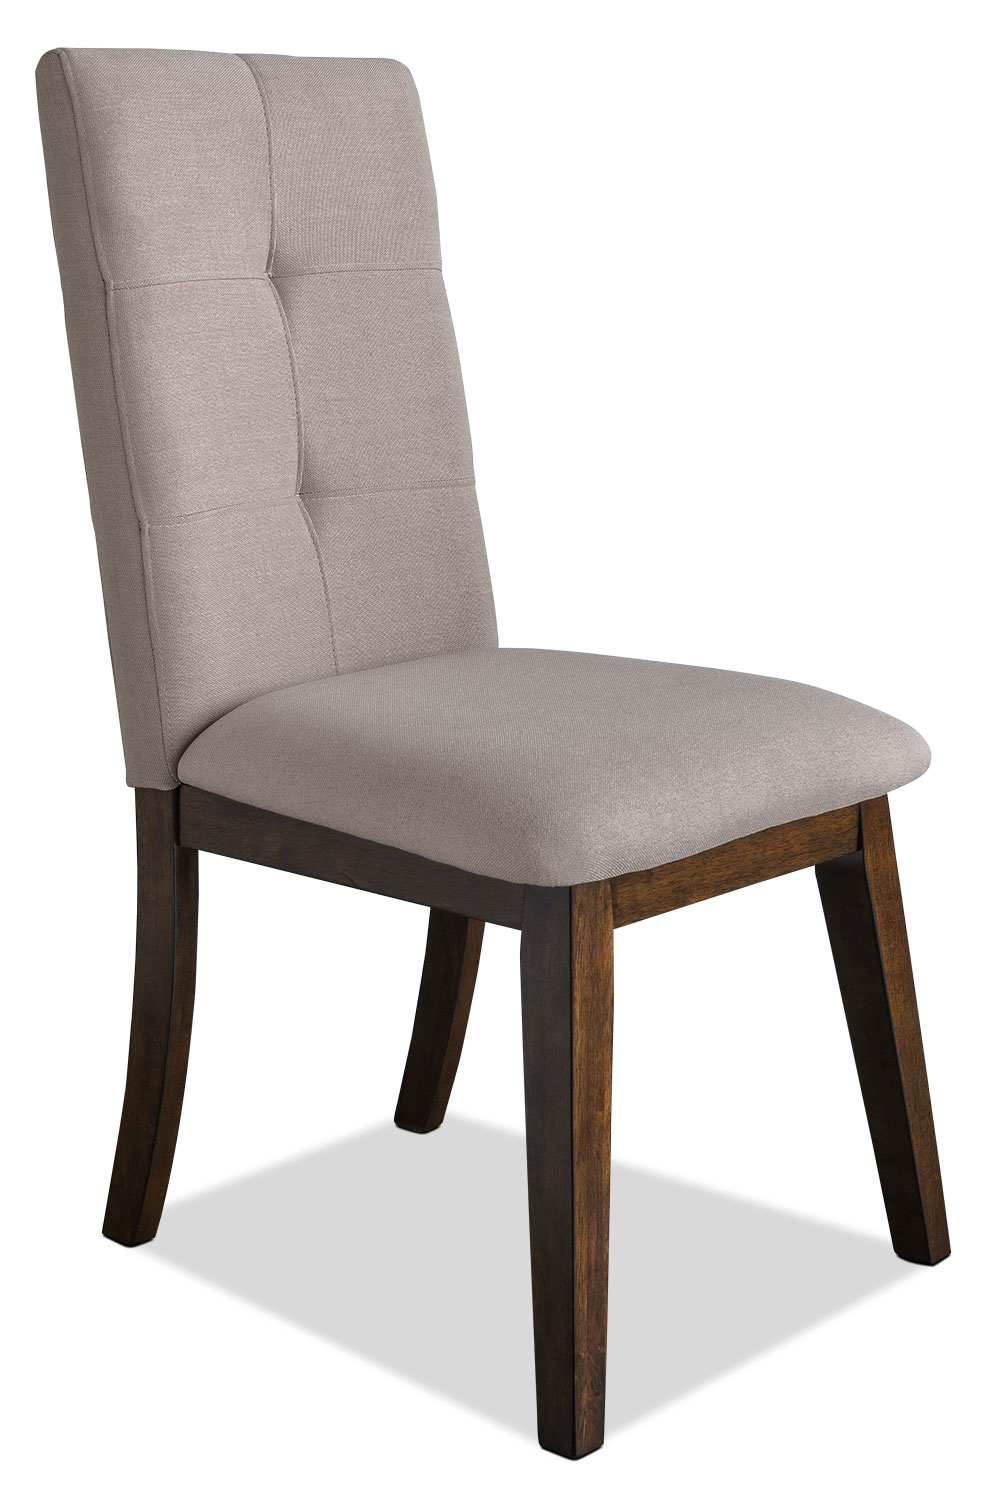 Dining Room Furniture - Chelsea Fabric Dining Chair – Beige